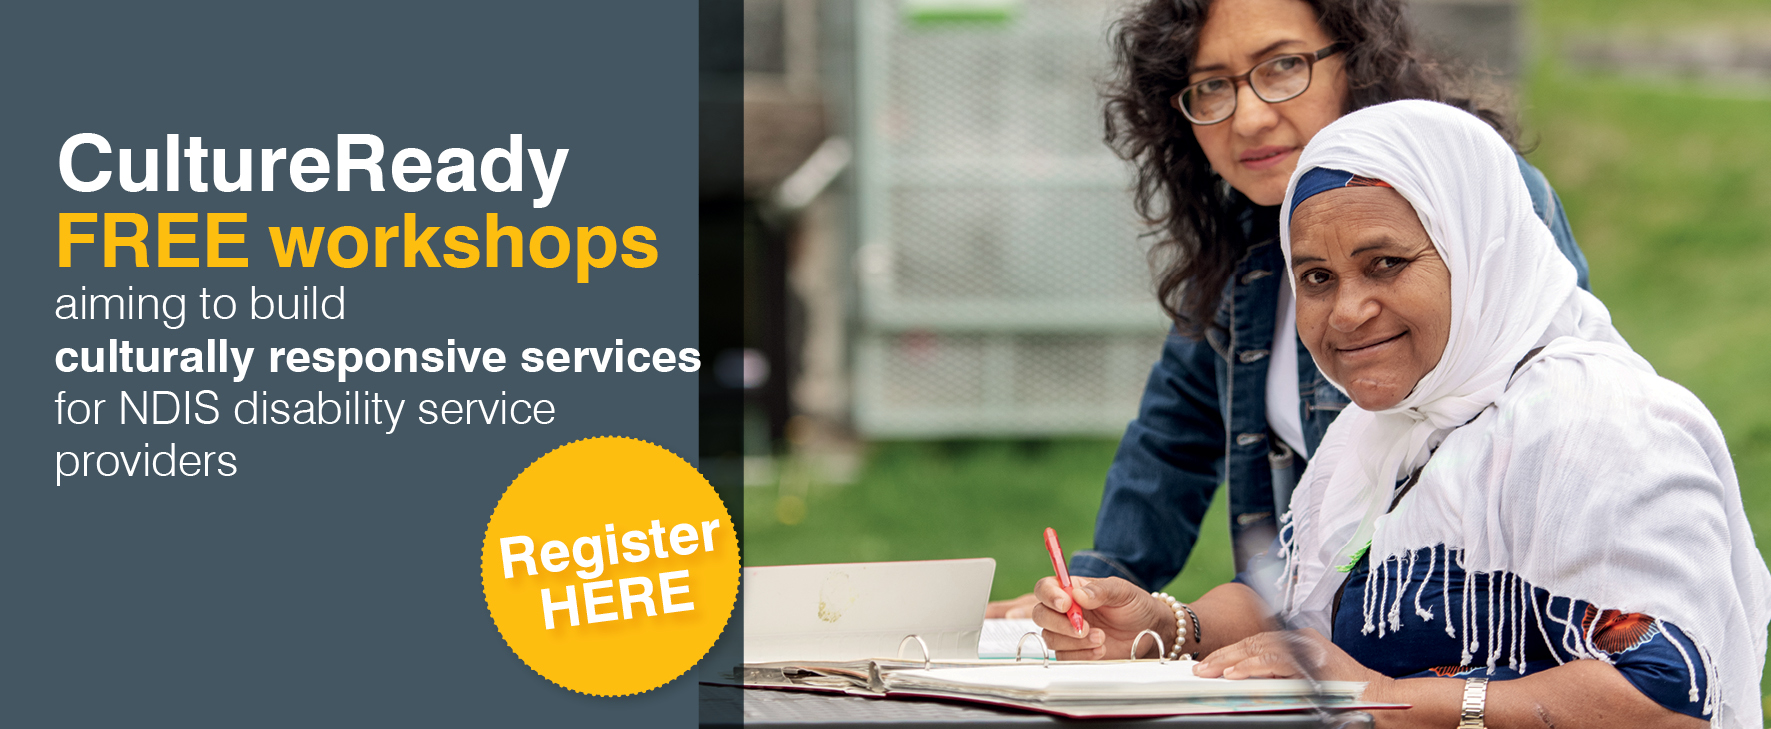 CultureReady FREE workshops aiming to build culturally responsive services for NDIS disability service providers. Register HERE.